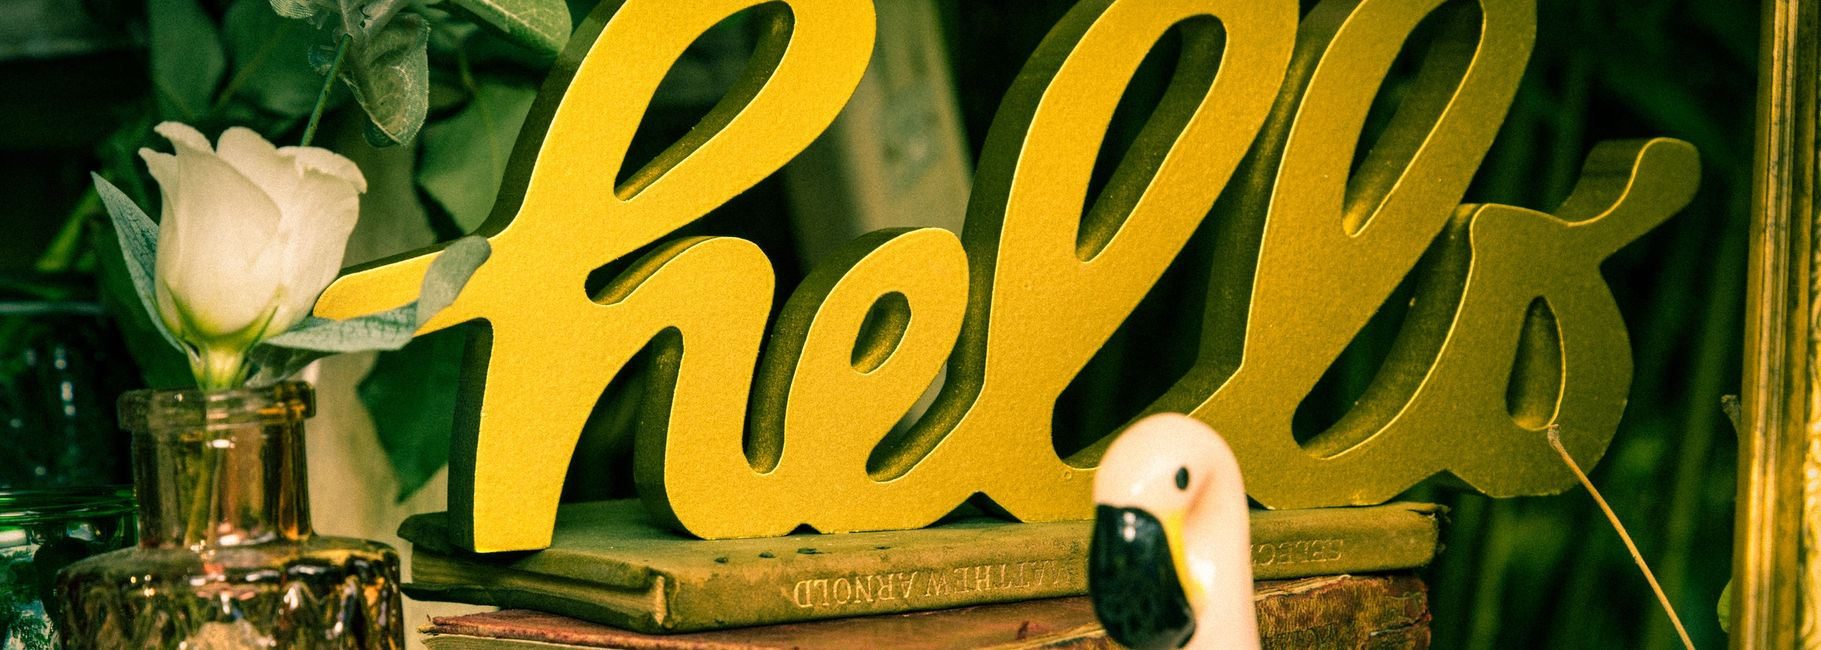 Gold italic wooden hello sign, vintage books, a small pink glass vase and pink flamingo resting on